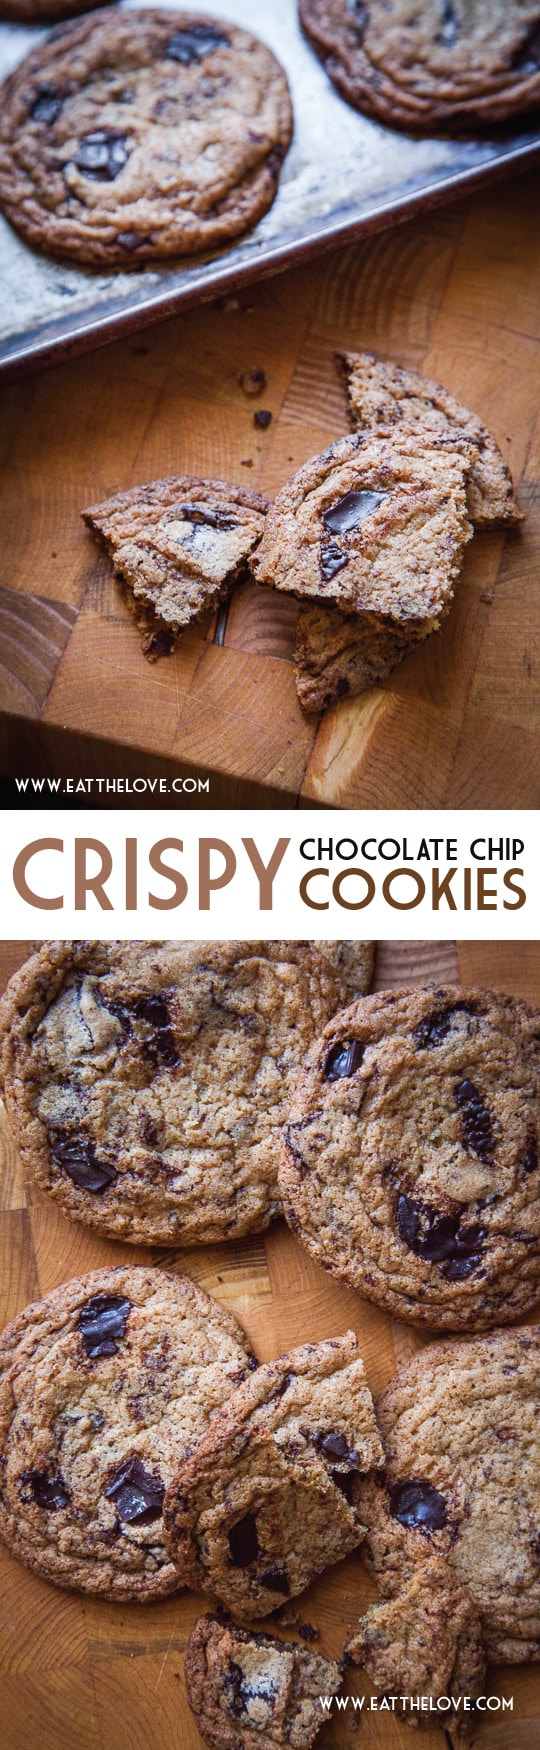 The Perfect Crispy Chocolate Chip Cookies Recipe by Irvin Lin of Eat the Love.